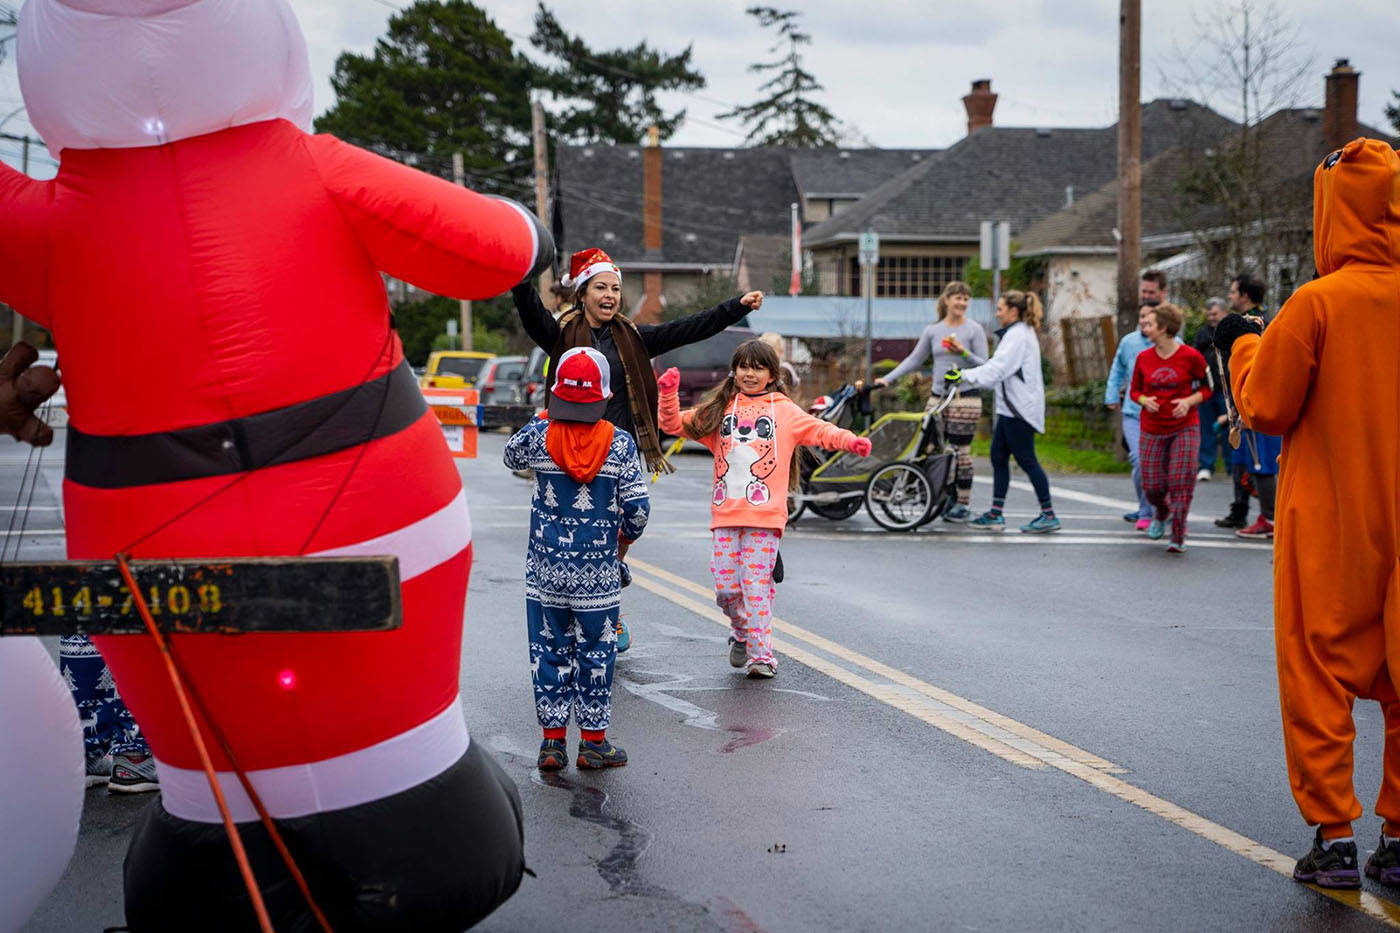 Residents raise food, funds for those in need with Pyjama Prance in Esquimalt